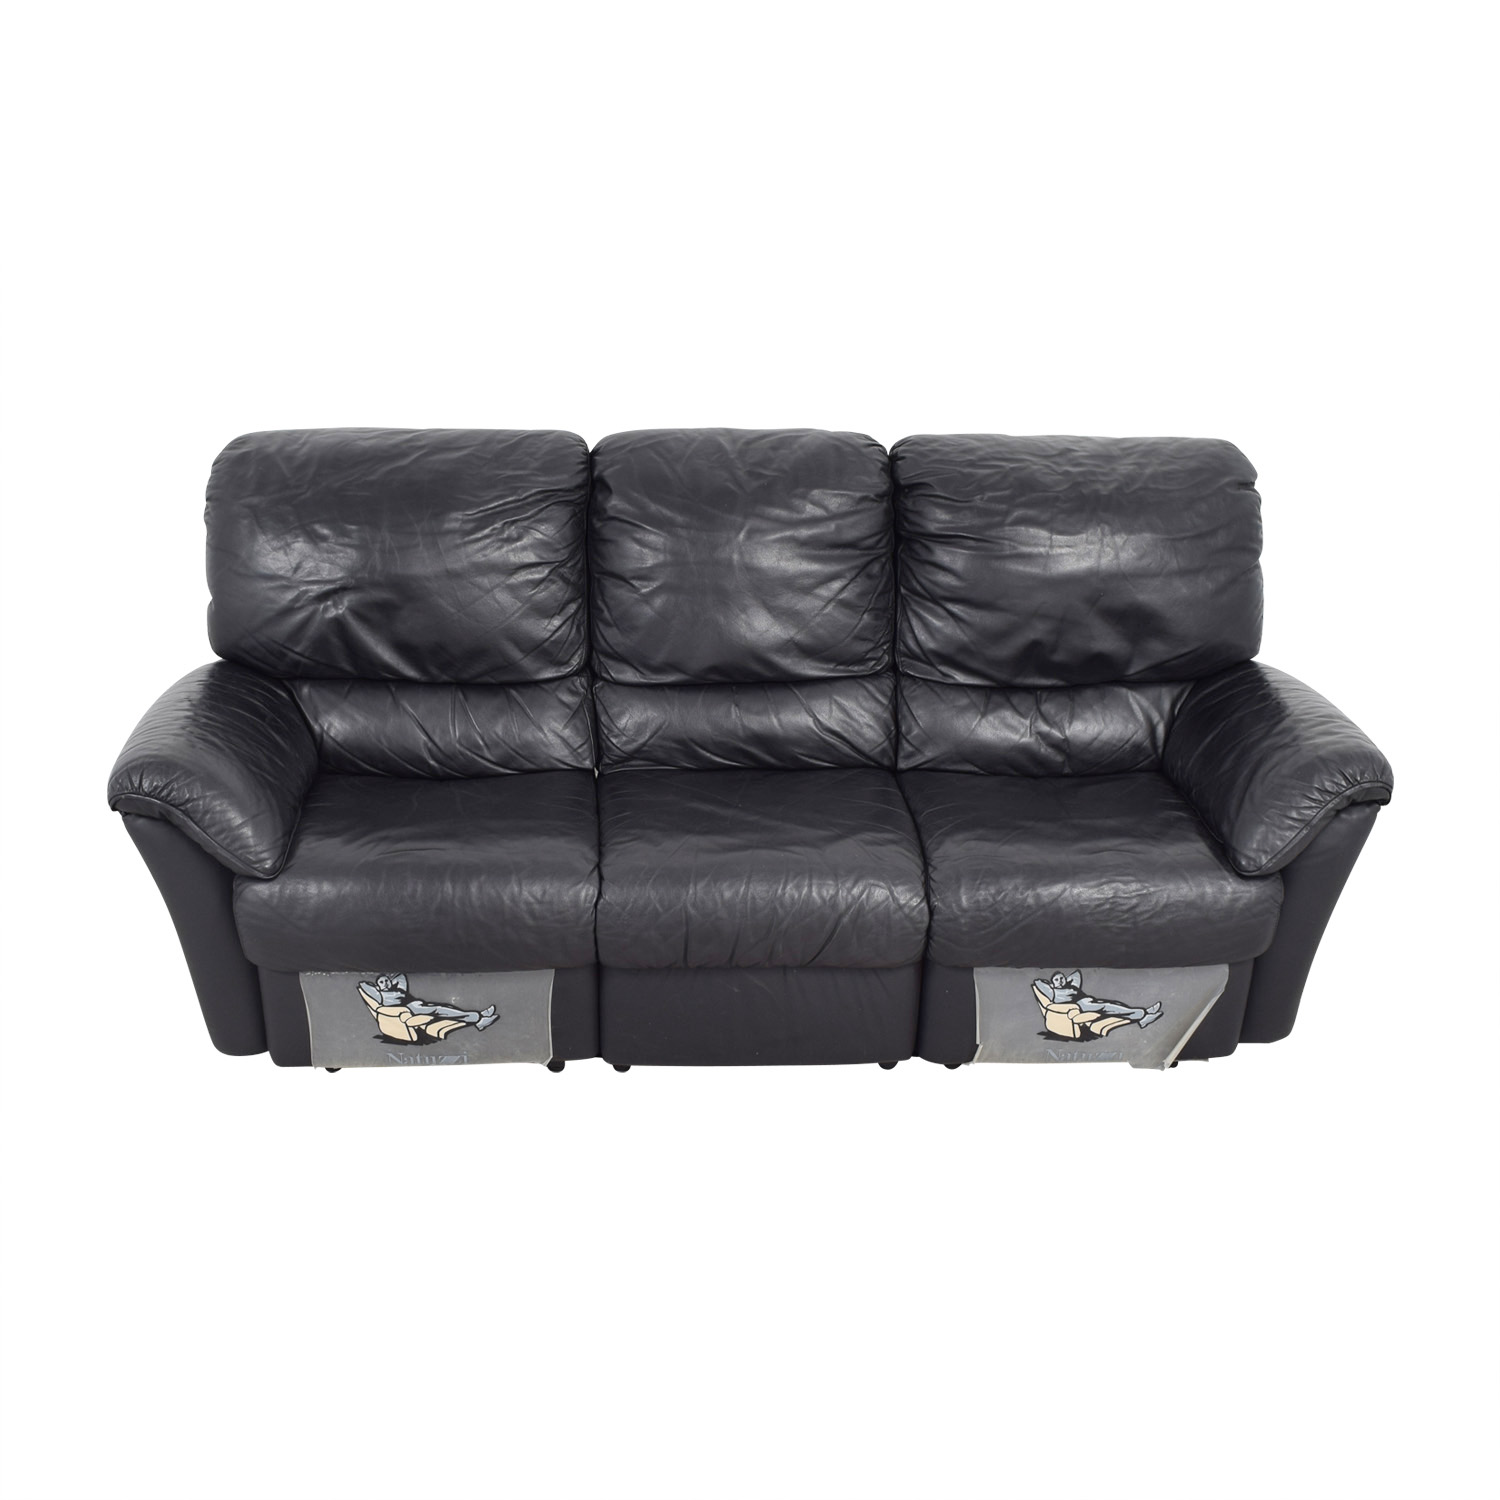 Natuzzi Natuzzi Black Recliner Sofa nyc